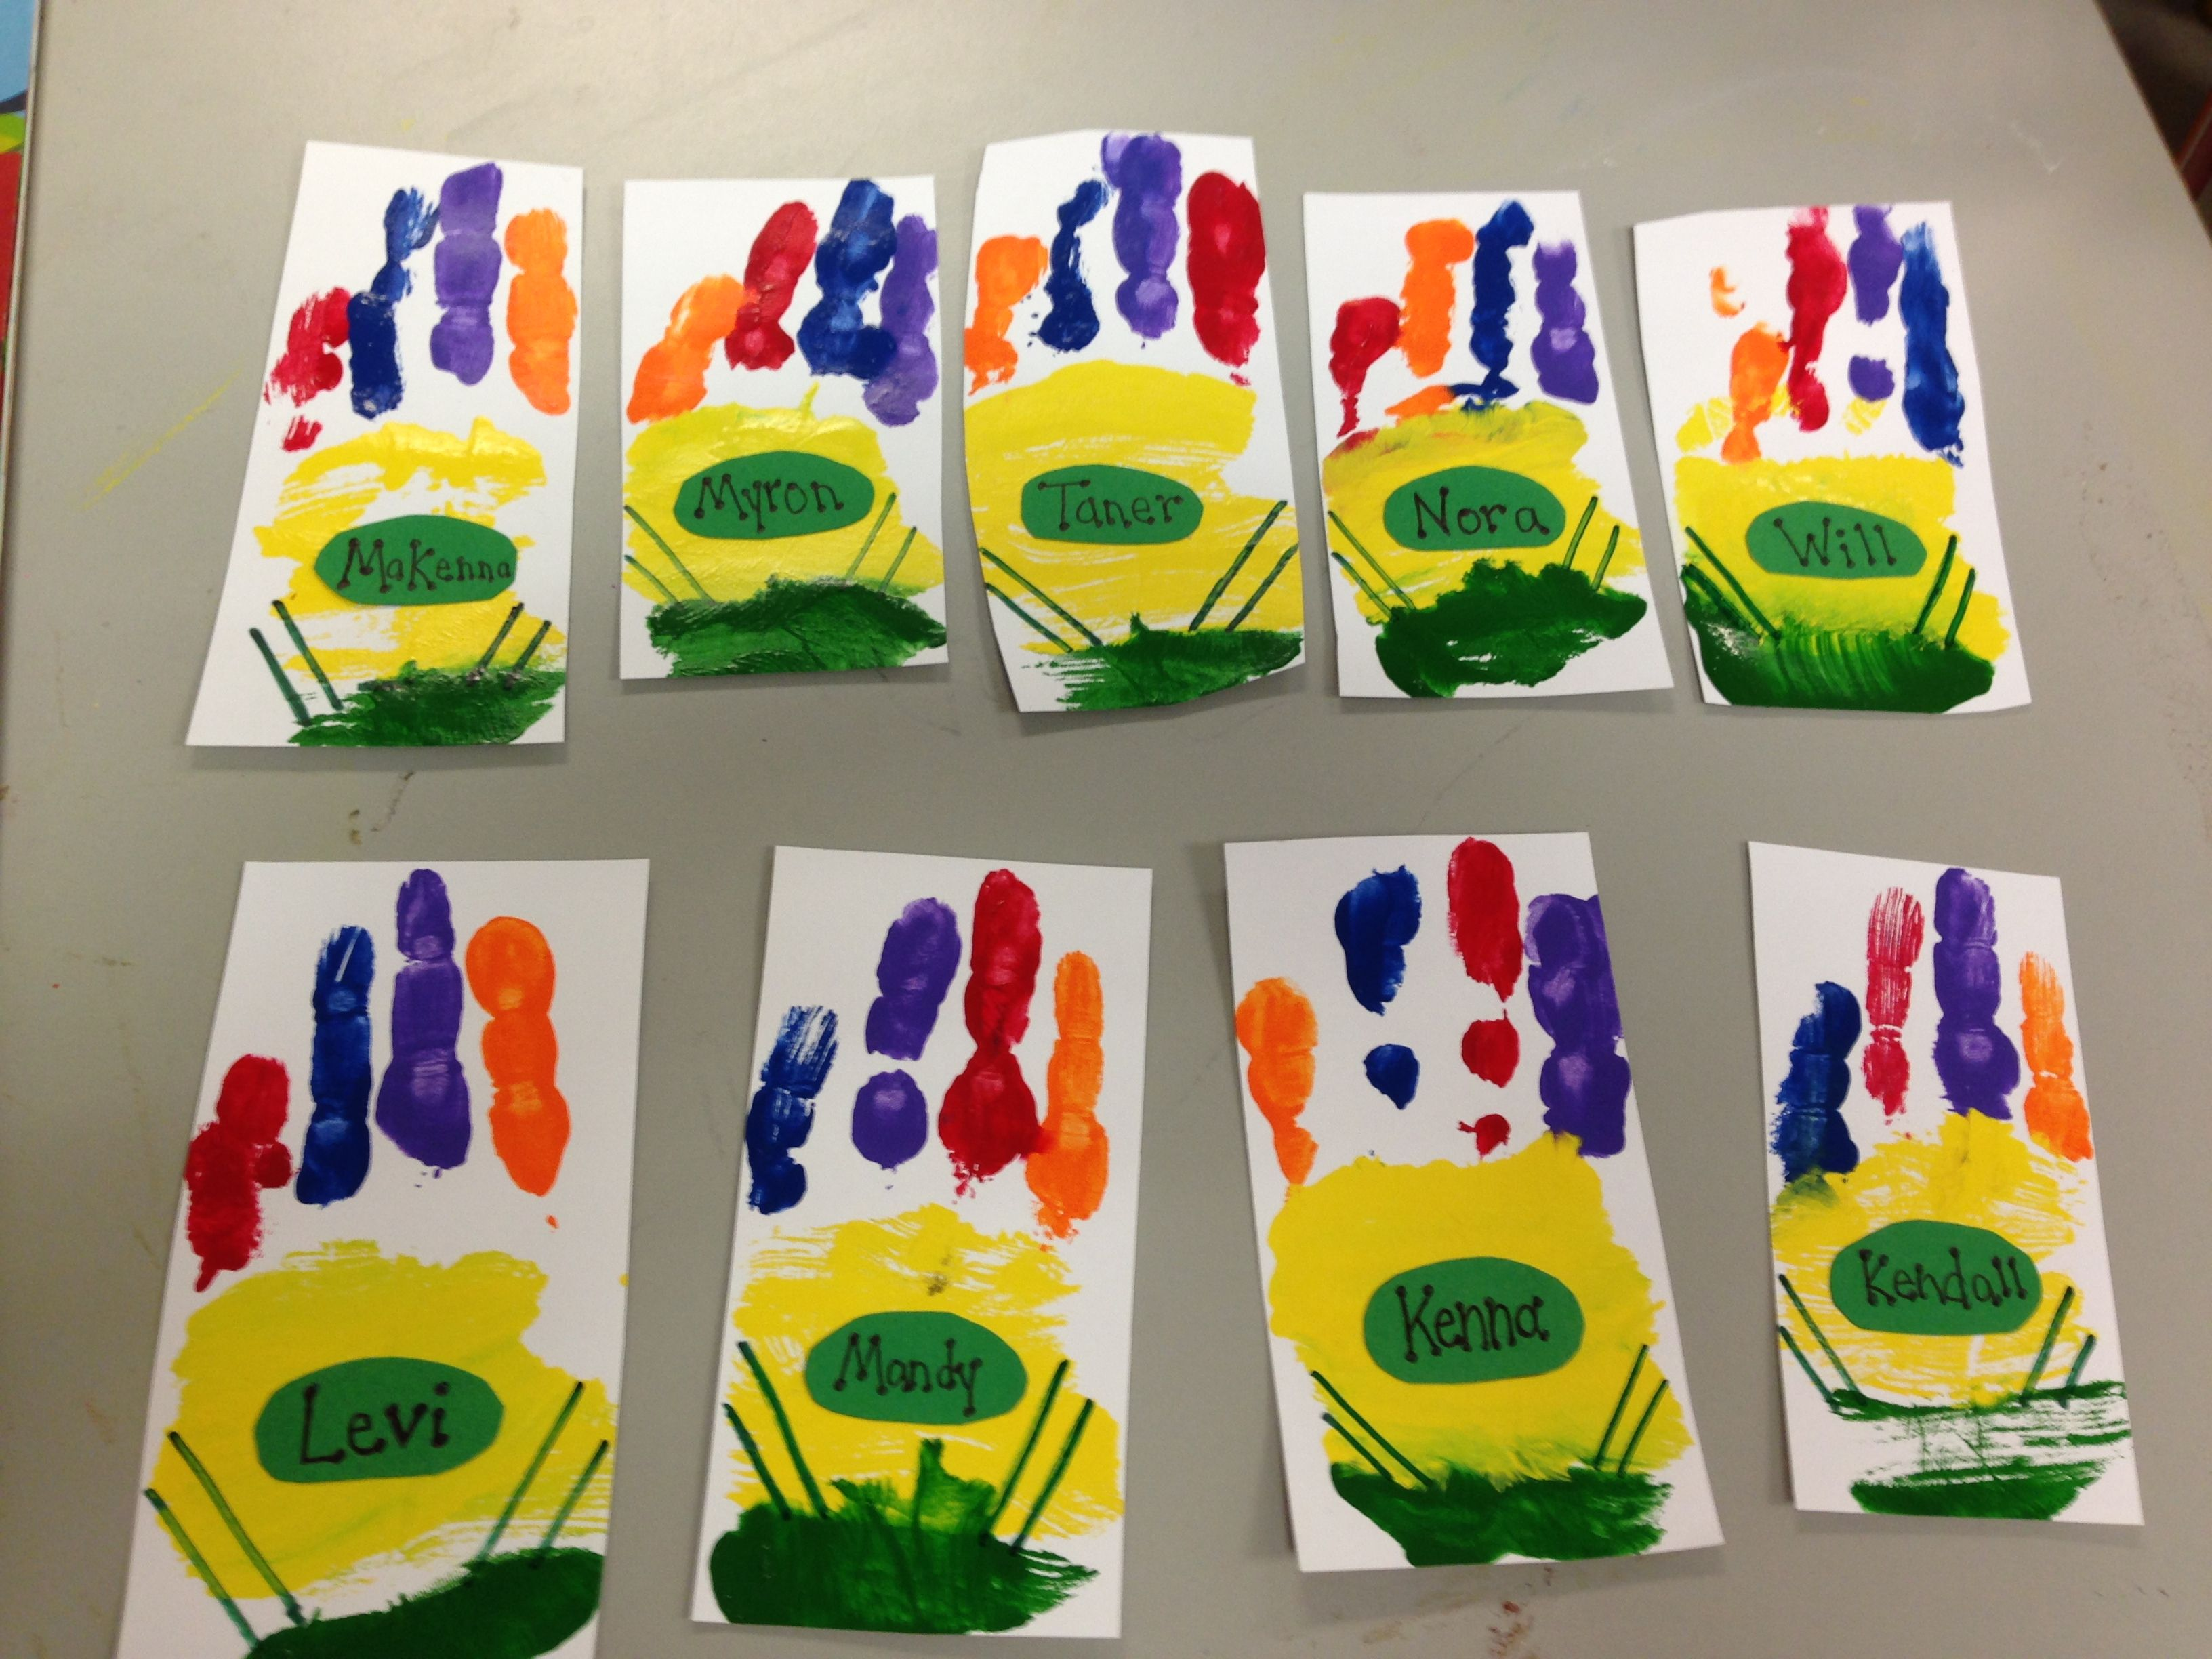 Learning colors art activities for preschool - Handprint Crayon Boxes Perfect For The Crayon Box That Talked Teaching Colorspreschool